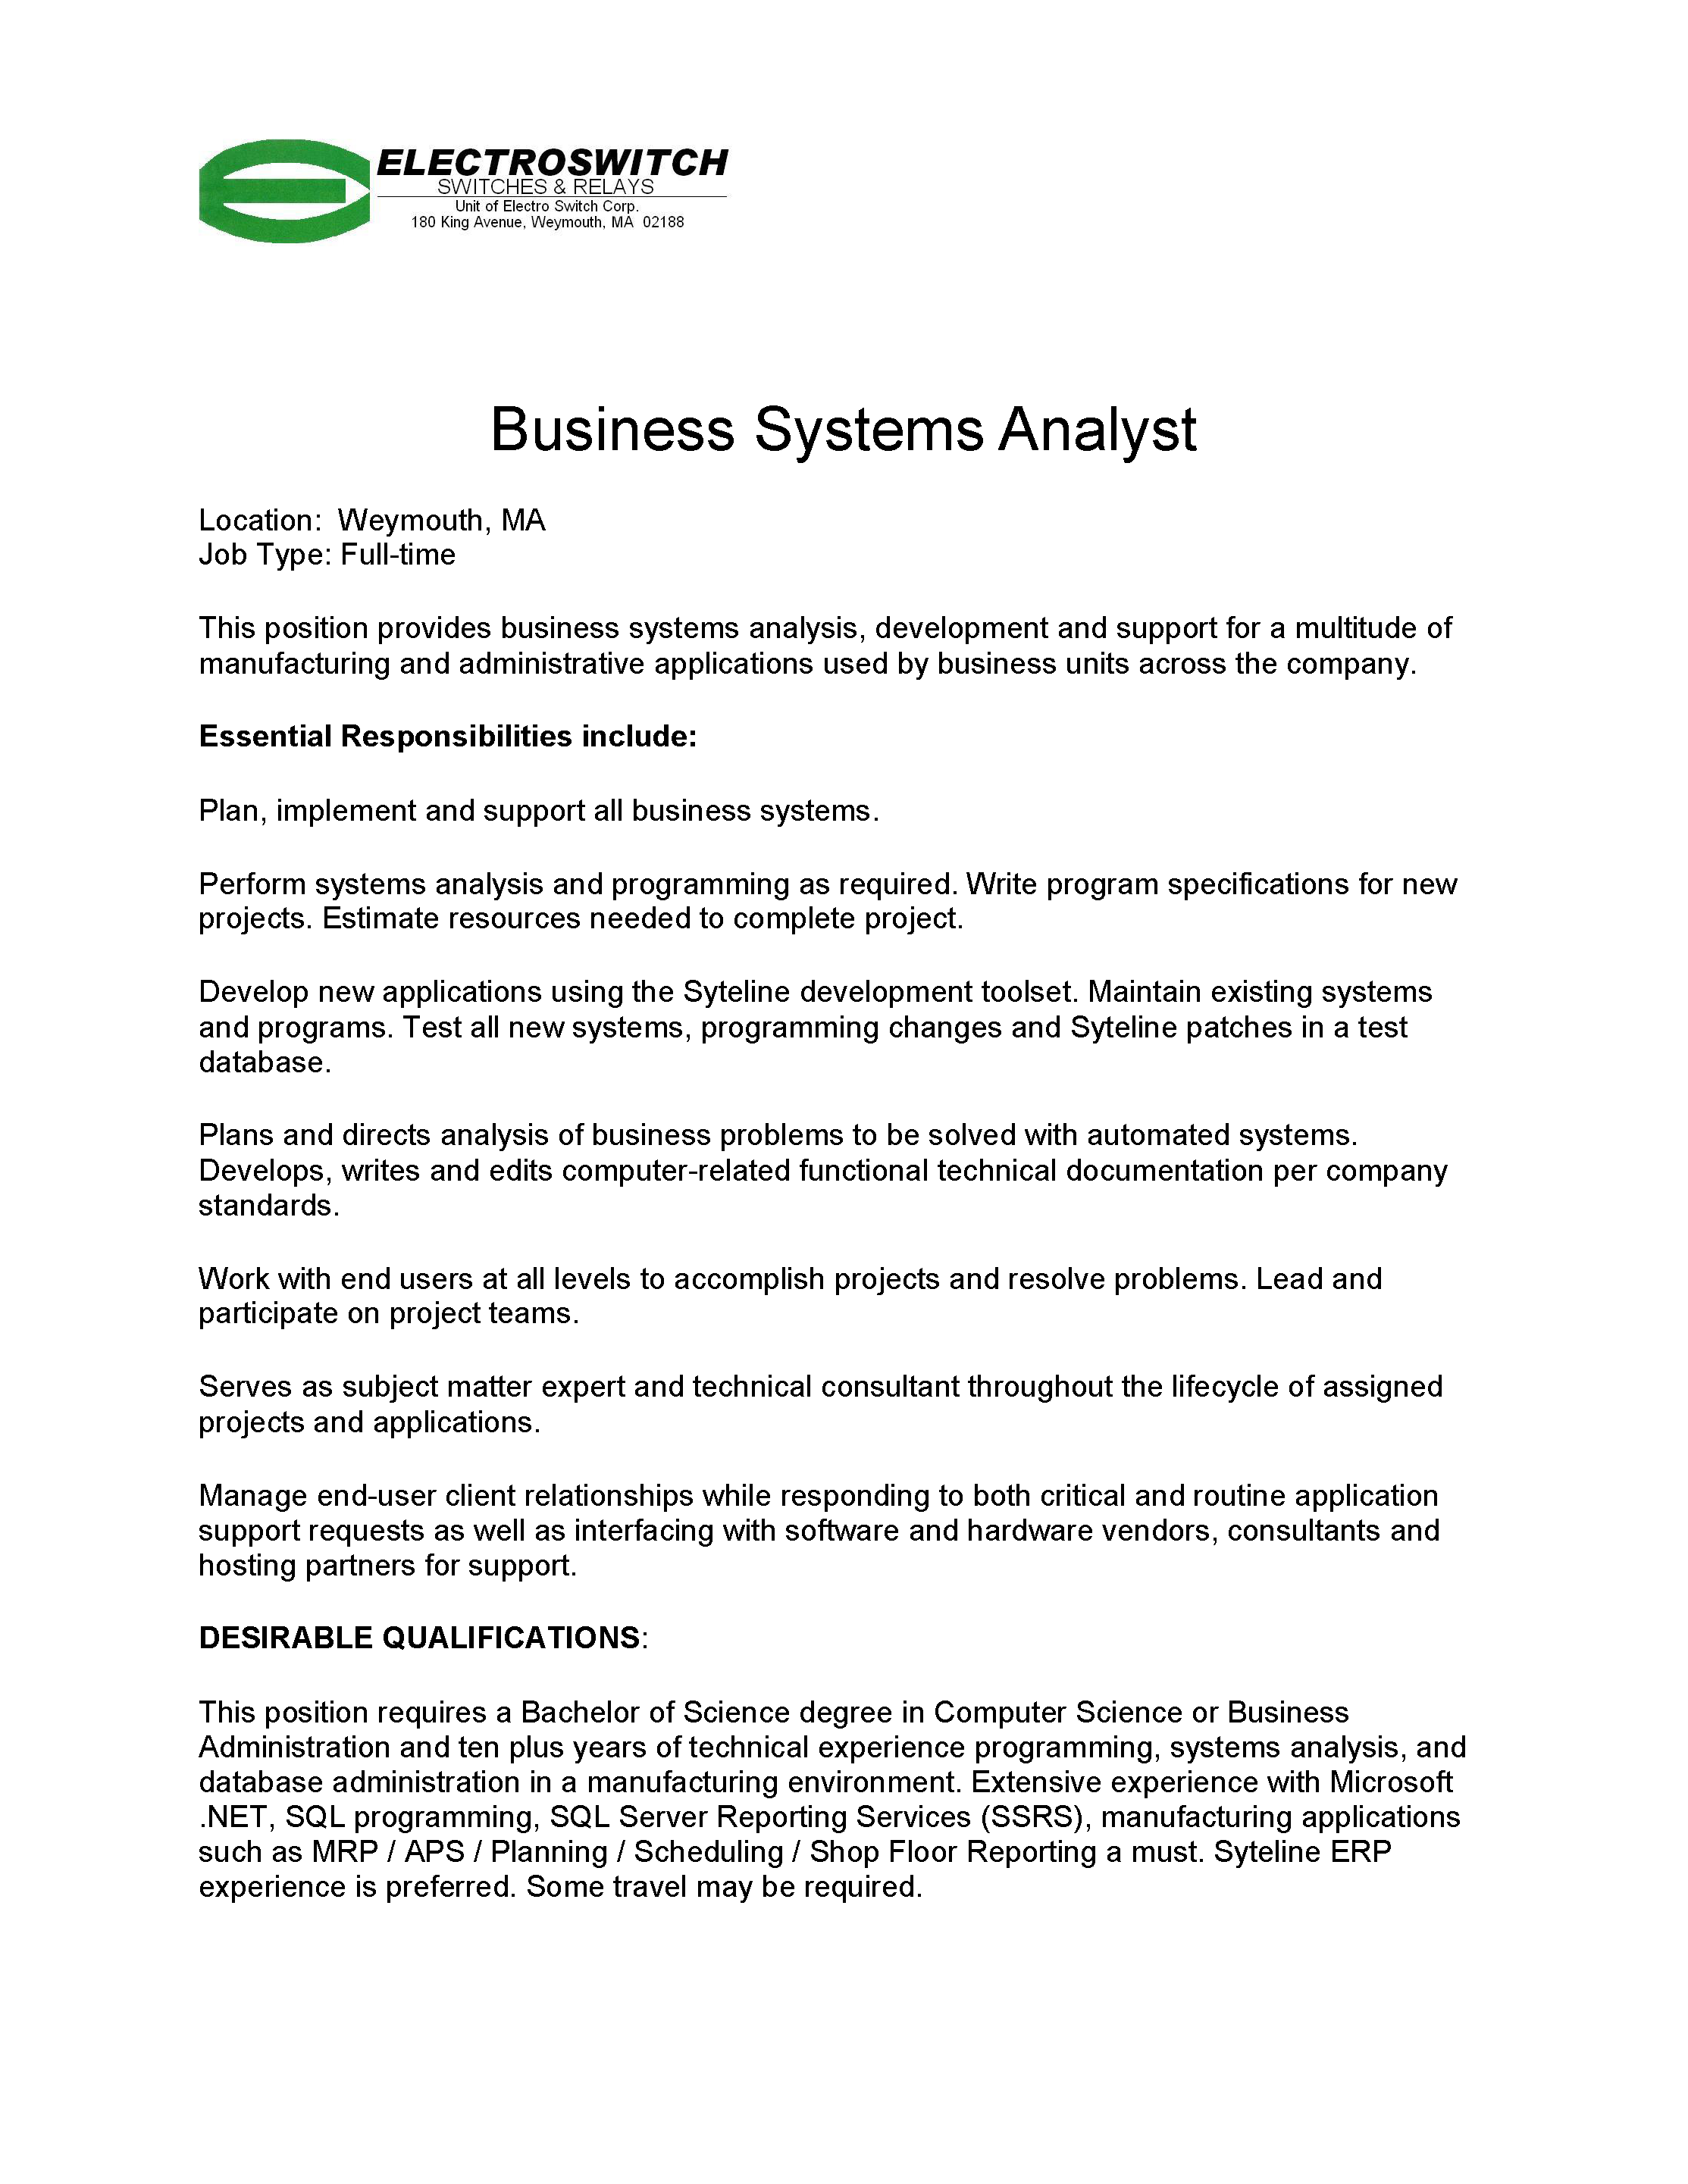 Business Systems Analyst Posting